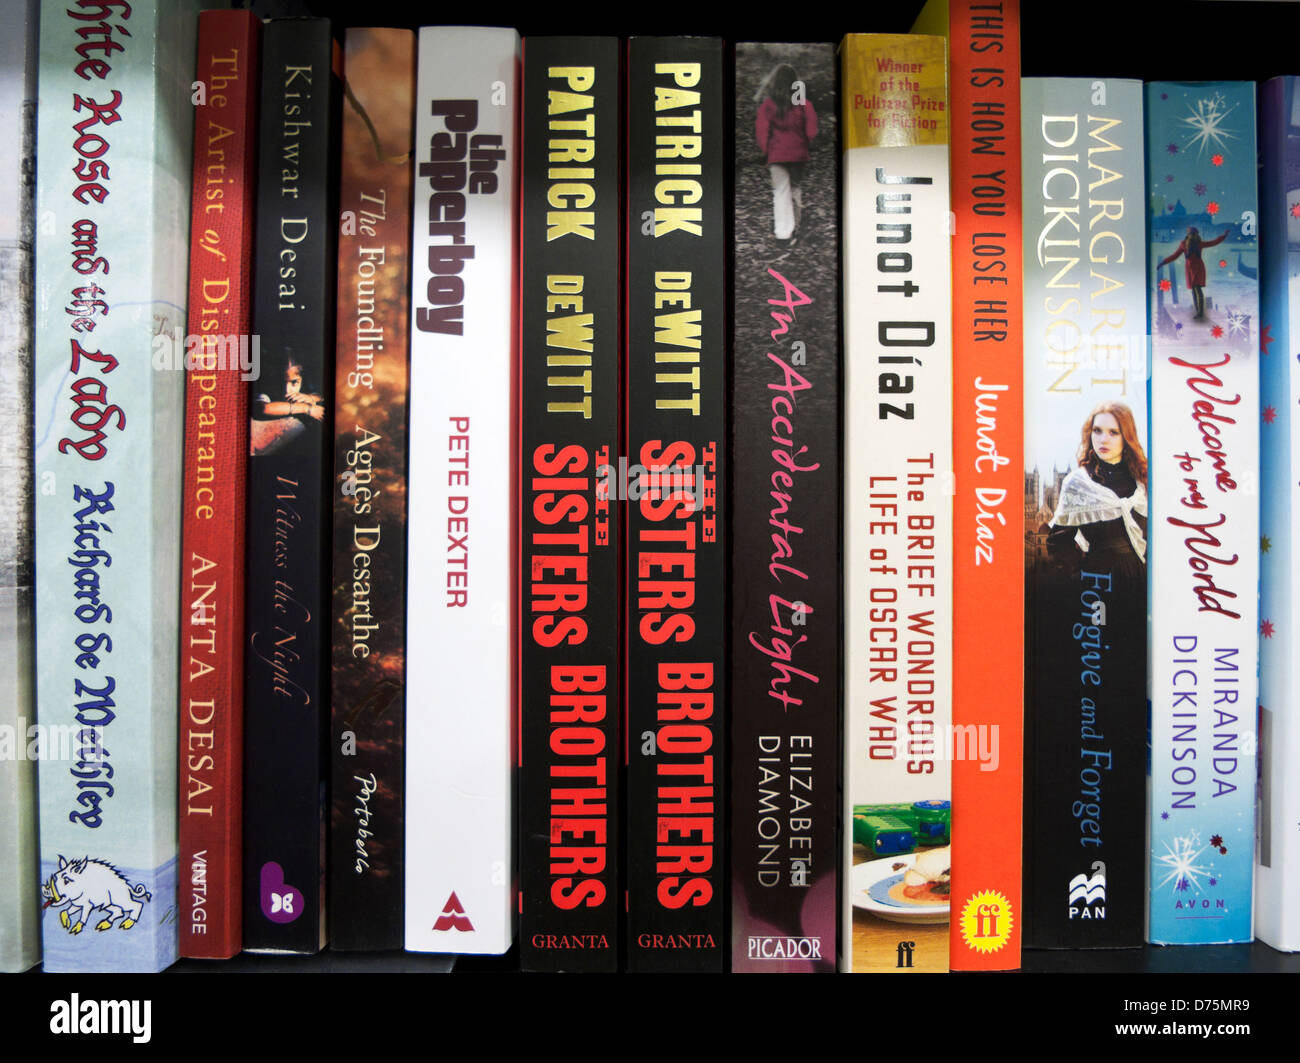 Patrick deWitt book The Sisters Brothers on a book shelf in Waterstones bookstore in London England UK  KATHY DEWITT - Stock Image